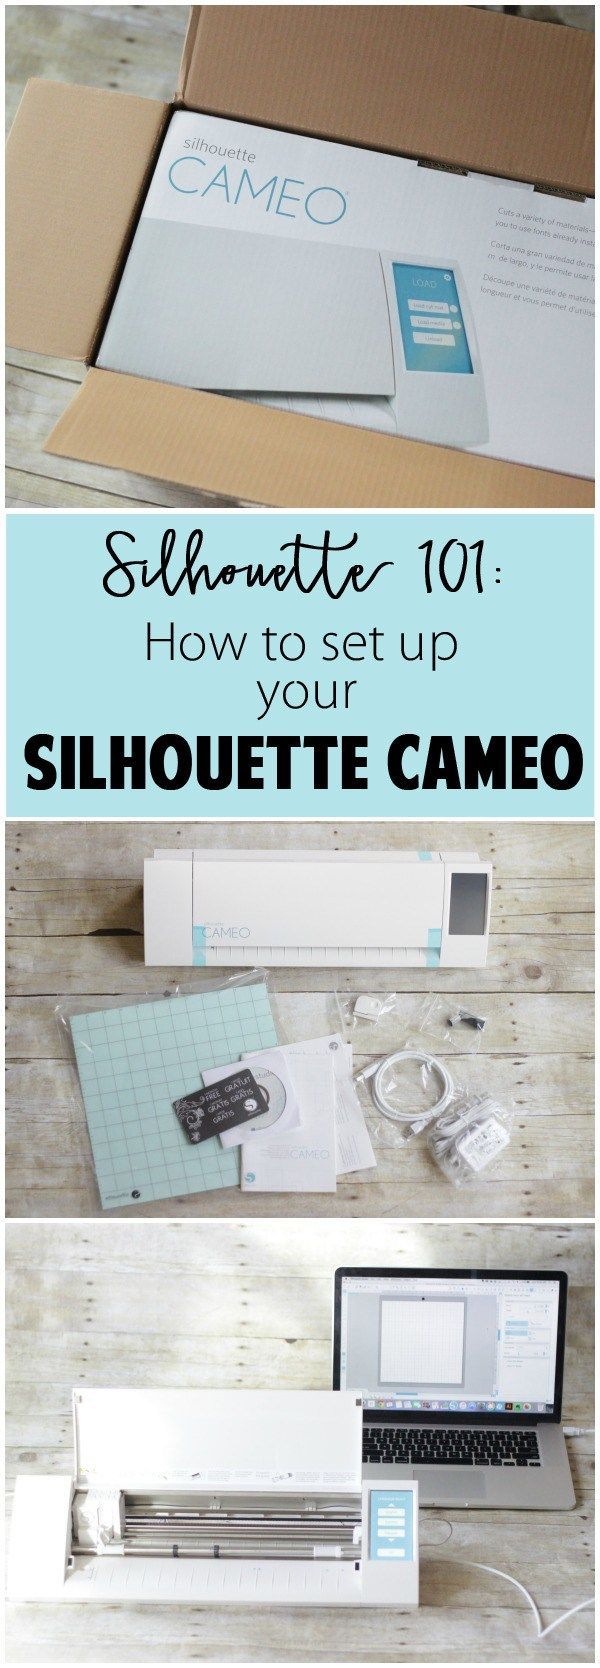 189 best silhouette cameo images on pinterest silhouettes silhouette cameo tutorials and. Black Bedroom Furniture Sets. Home Design Ideas